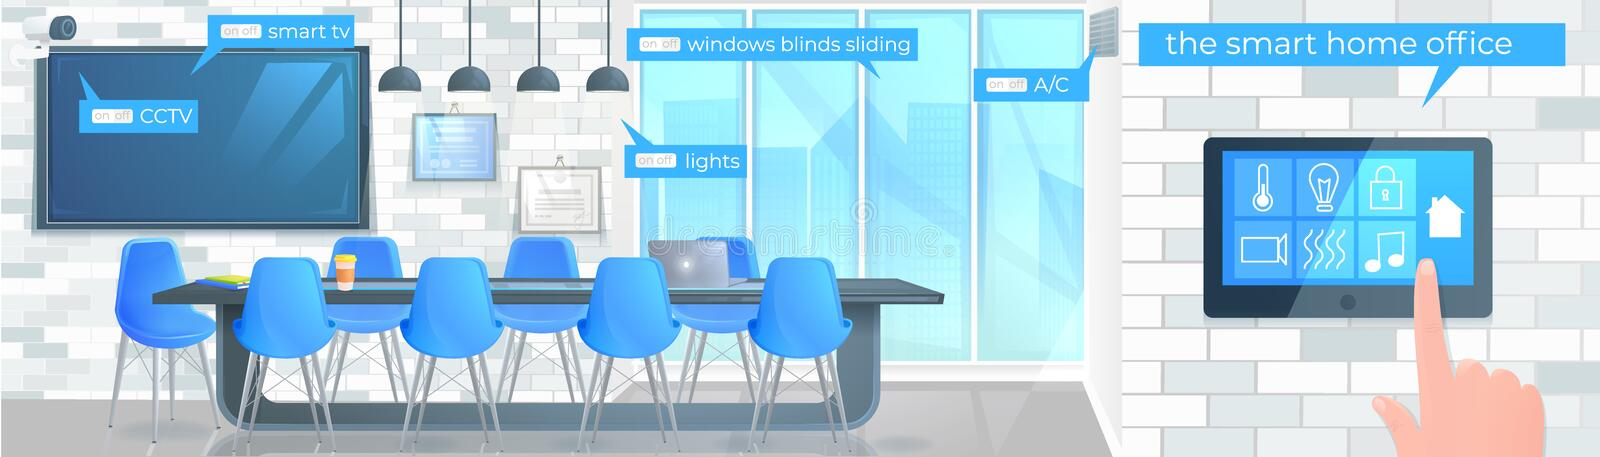 Smart home office banner. Modern conference room with a control screen and hand vector illustration